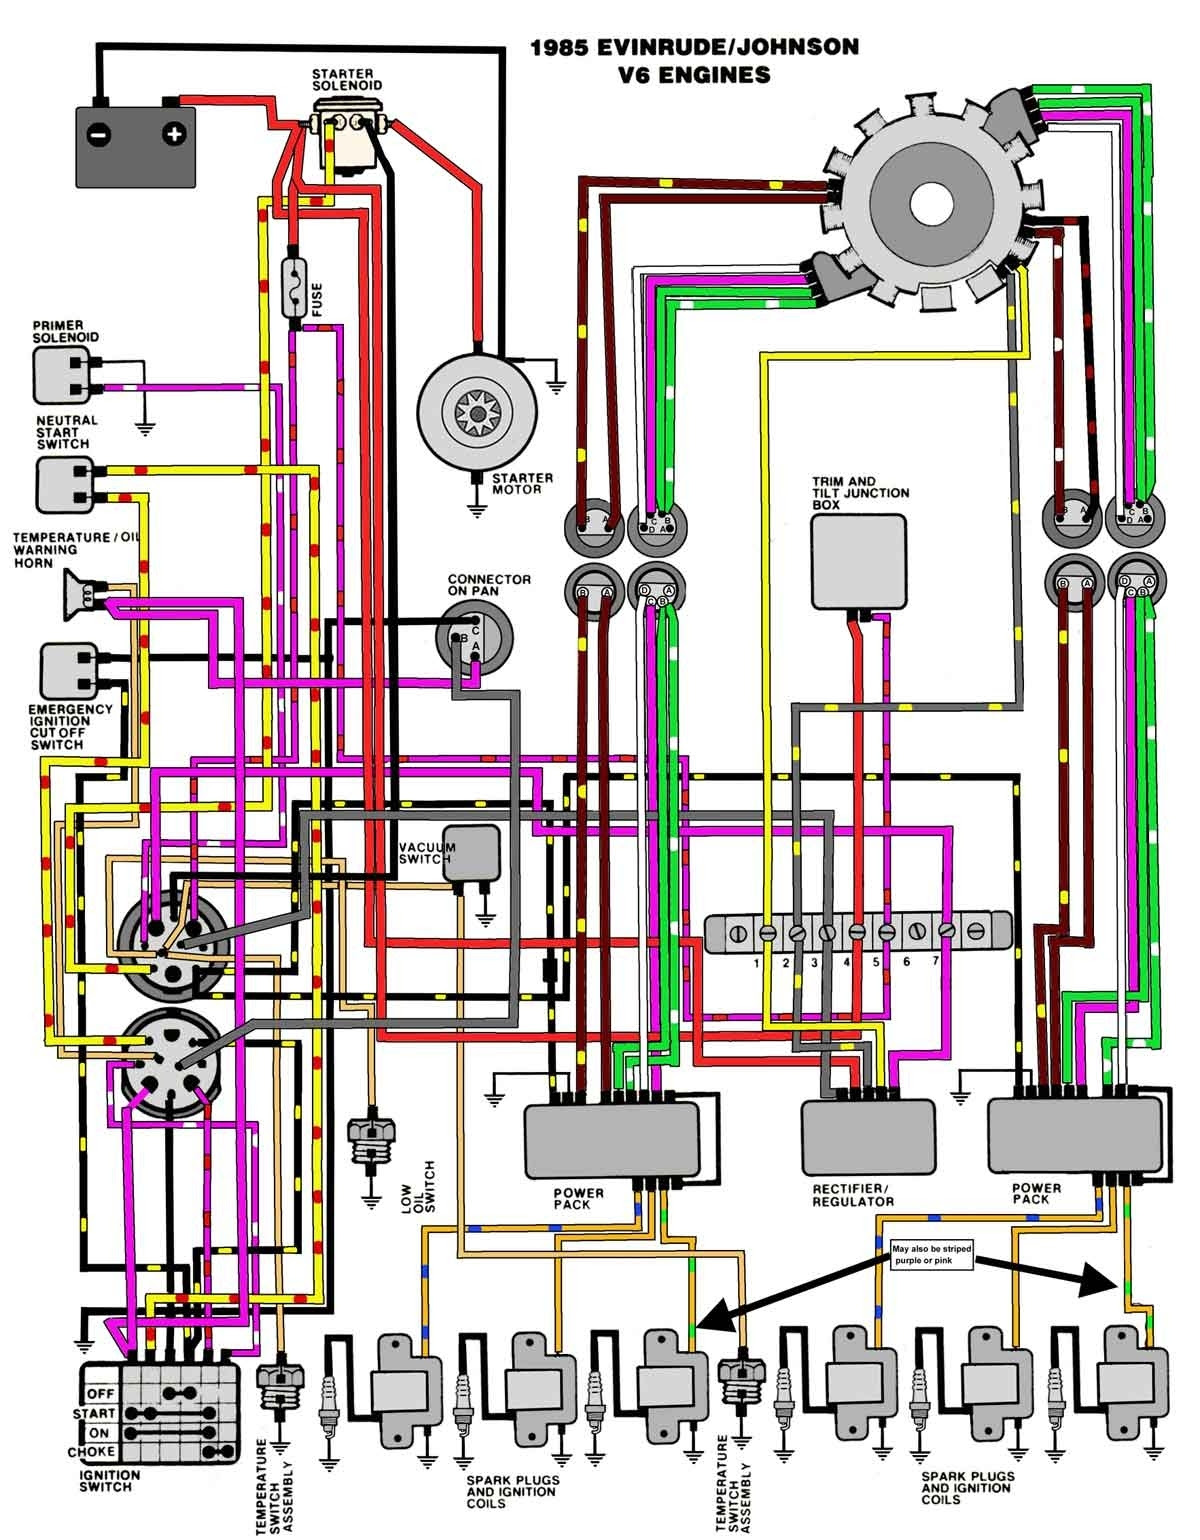 31 Johnson Tilt And Trim Wiring Diagram - Wiring Diagram DatabaseWiring Diagram Database